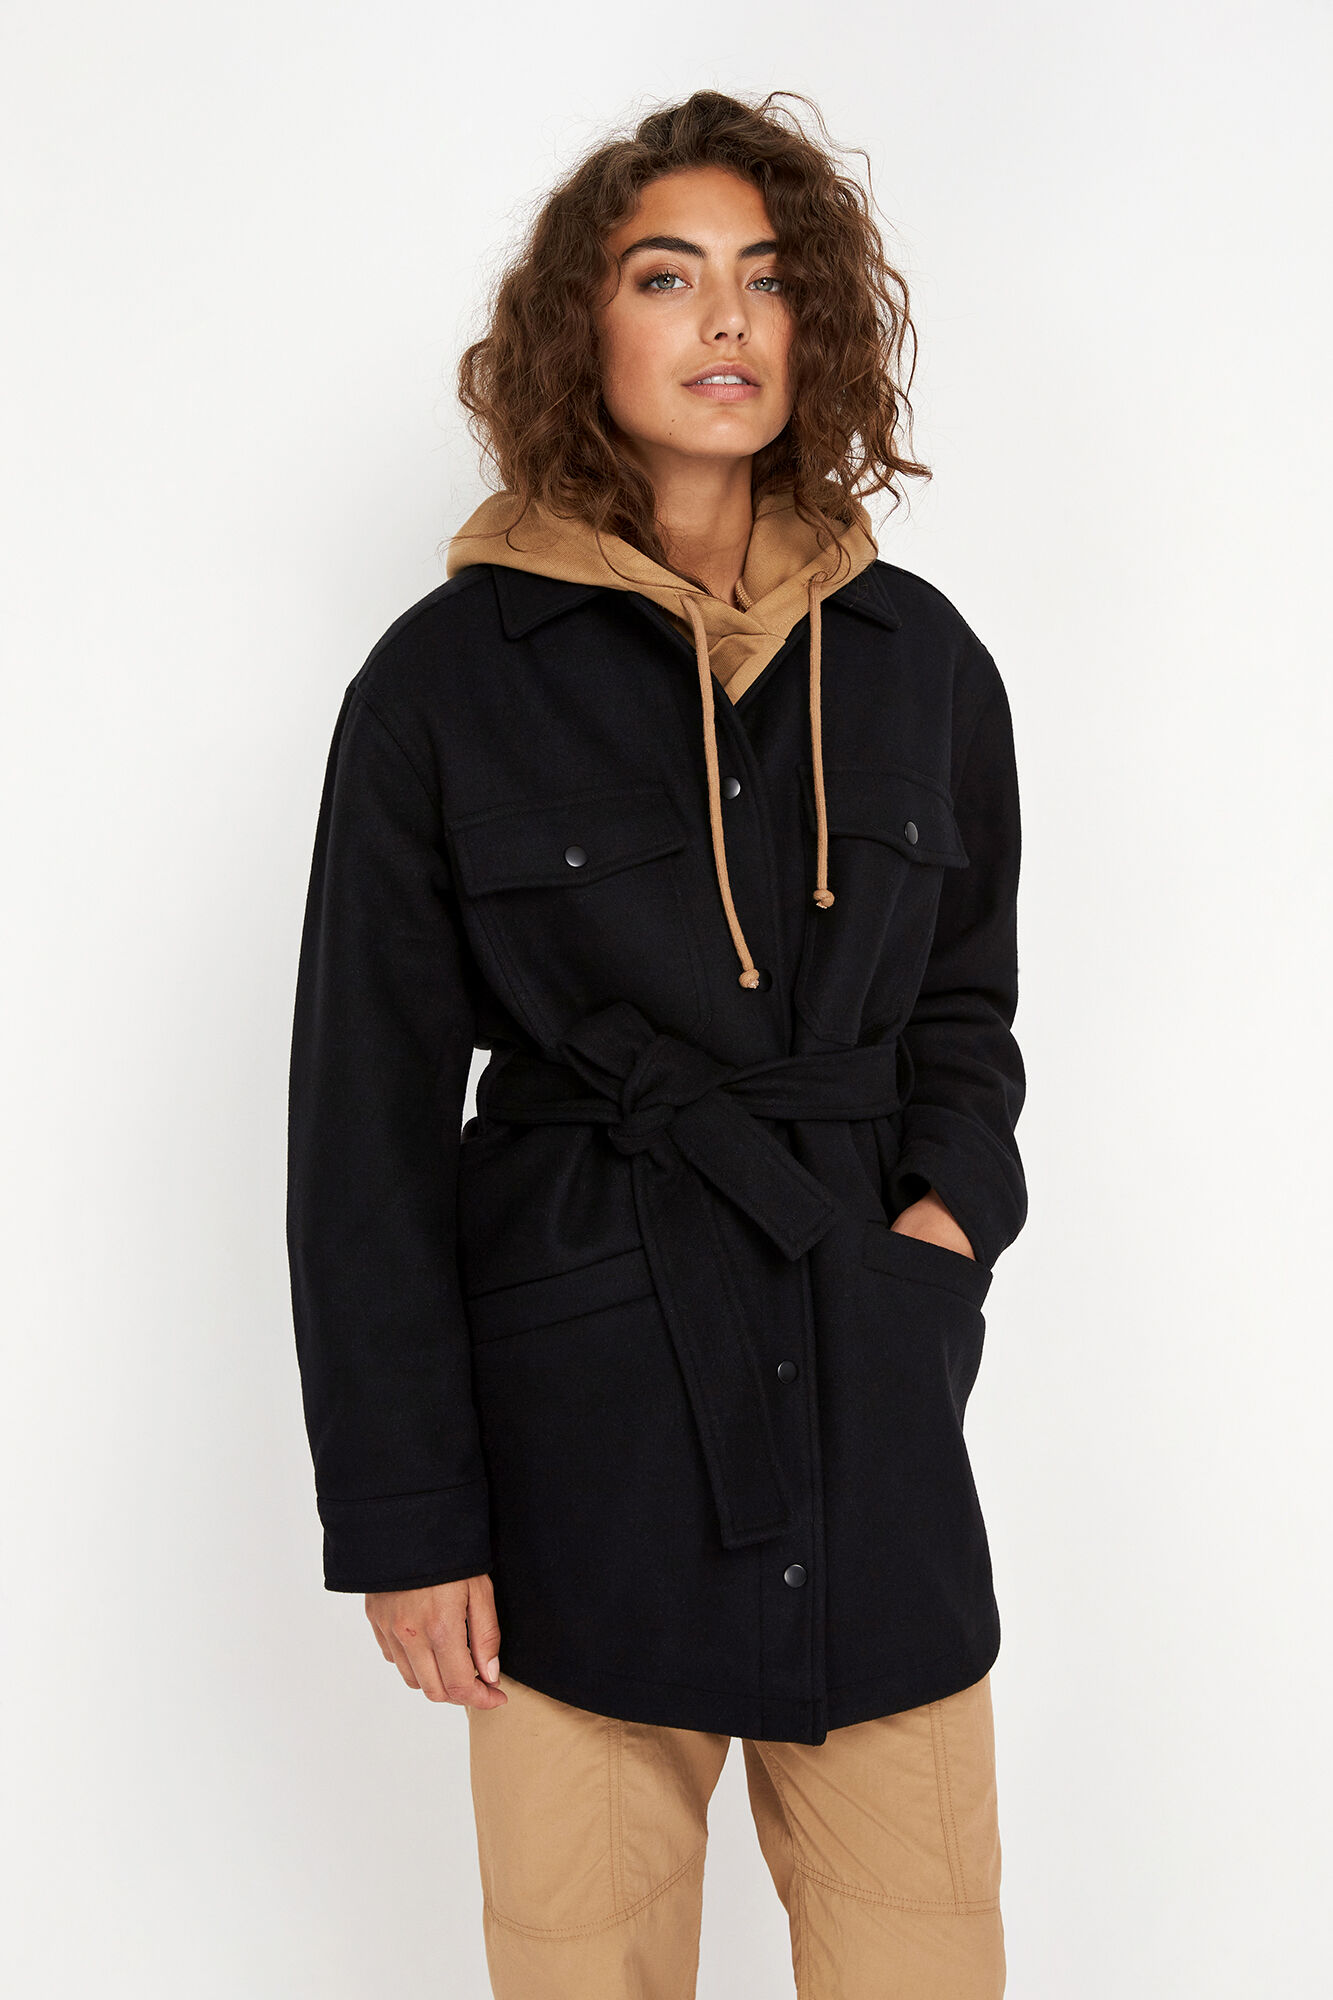 ENPORTLAND JACKET 6792, BLACK